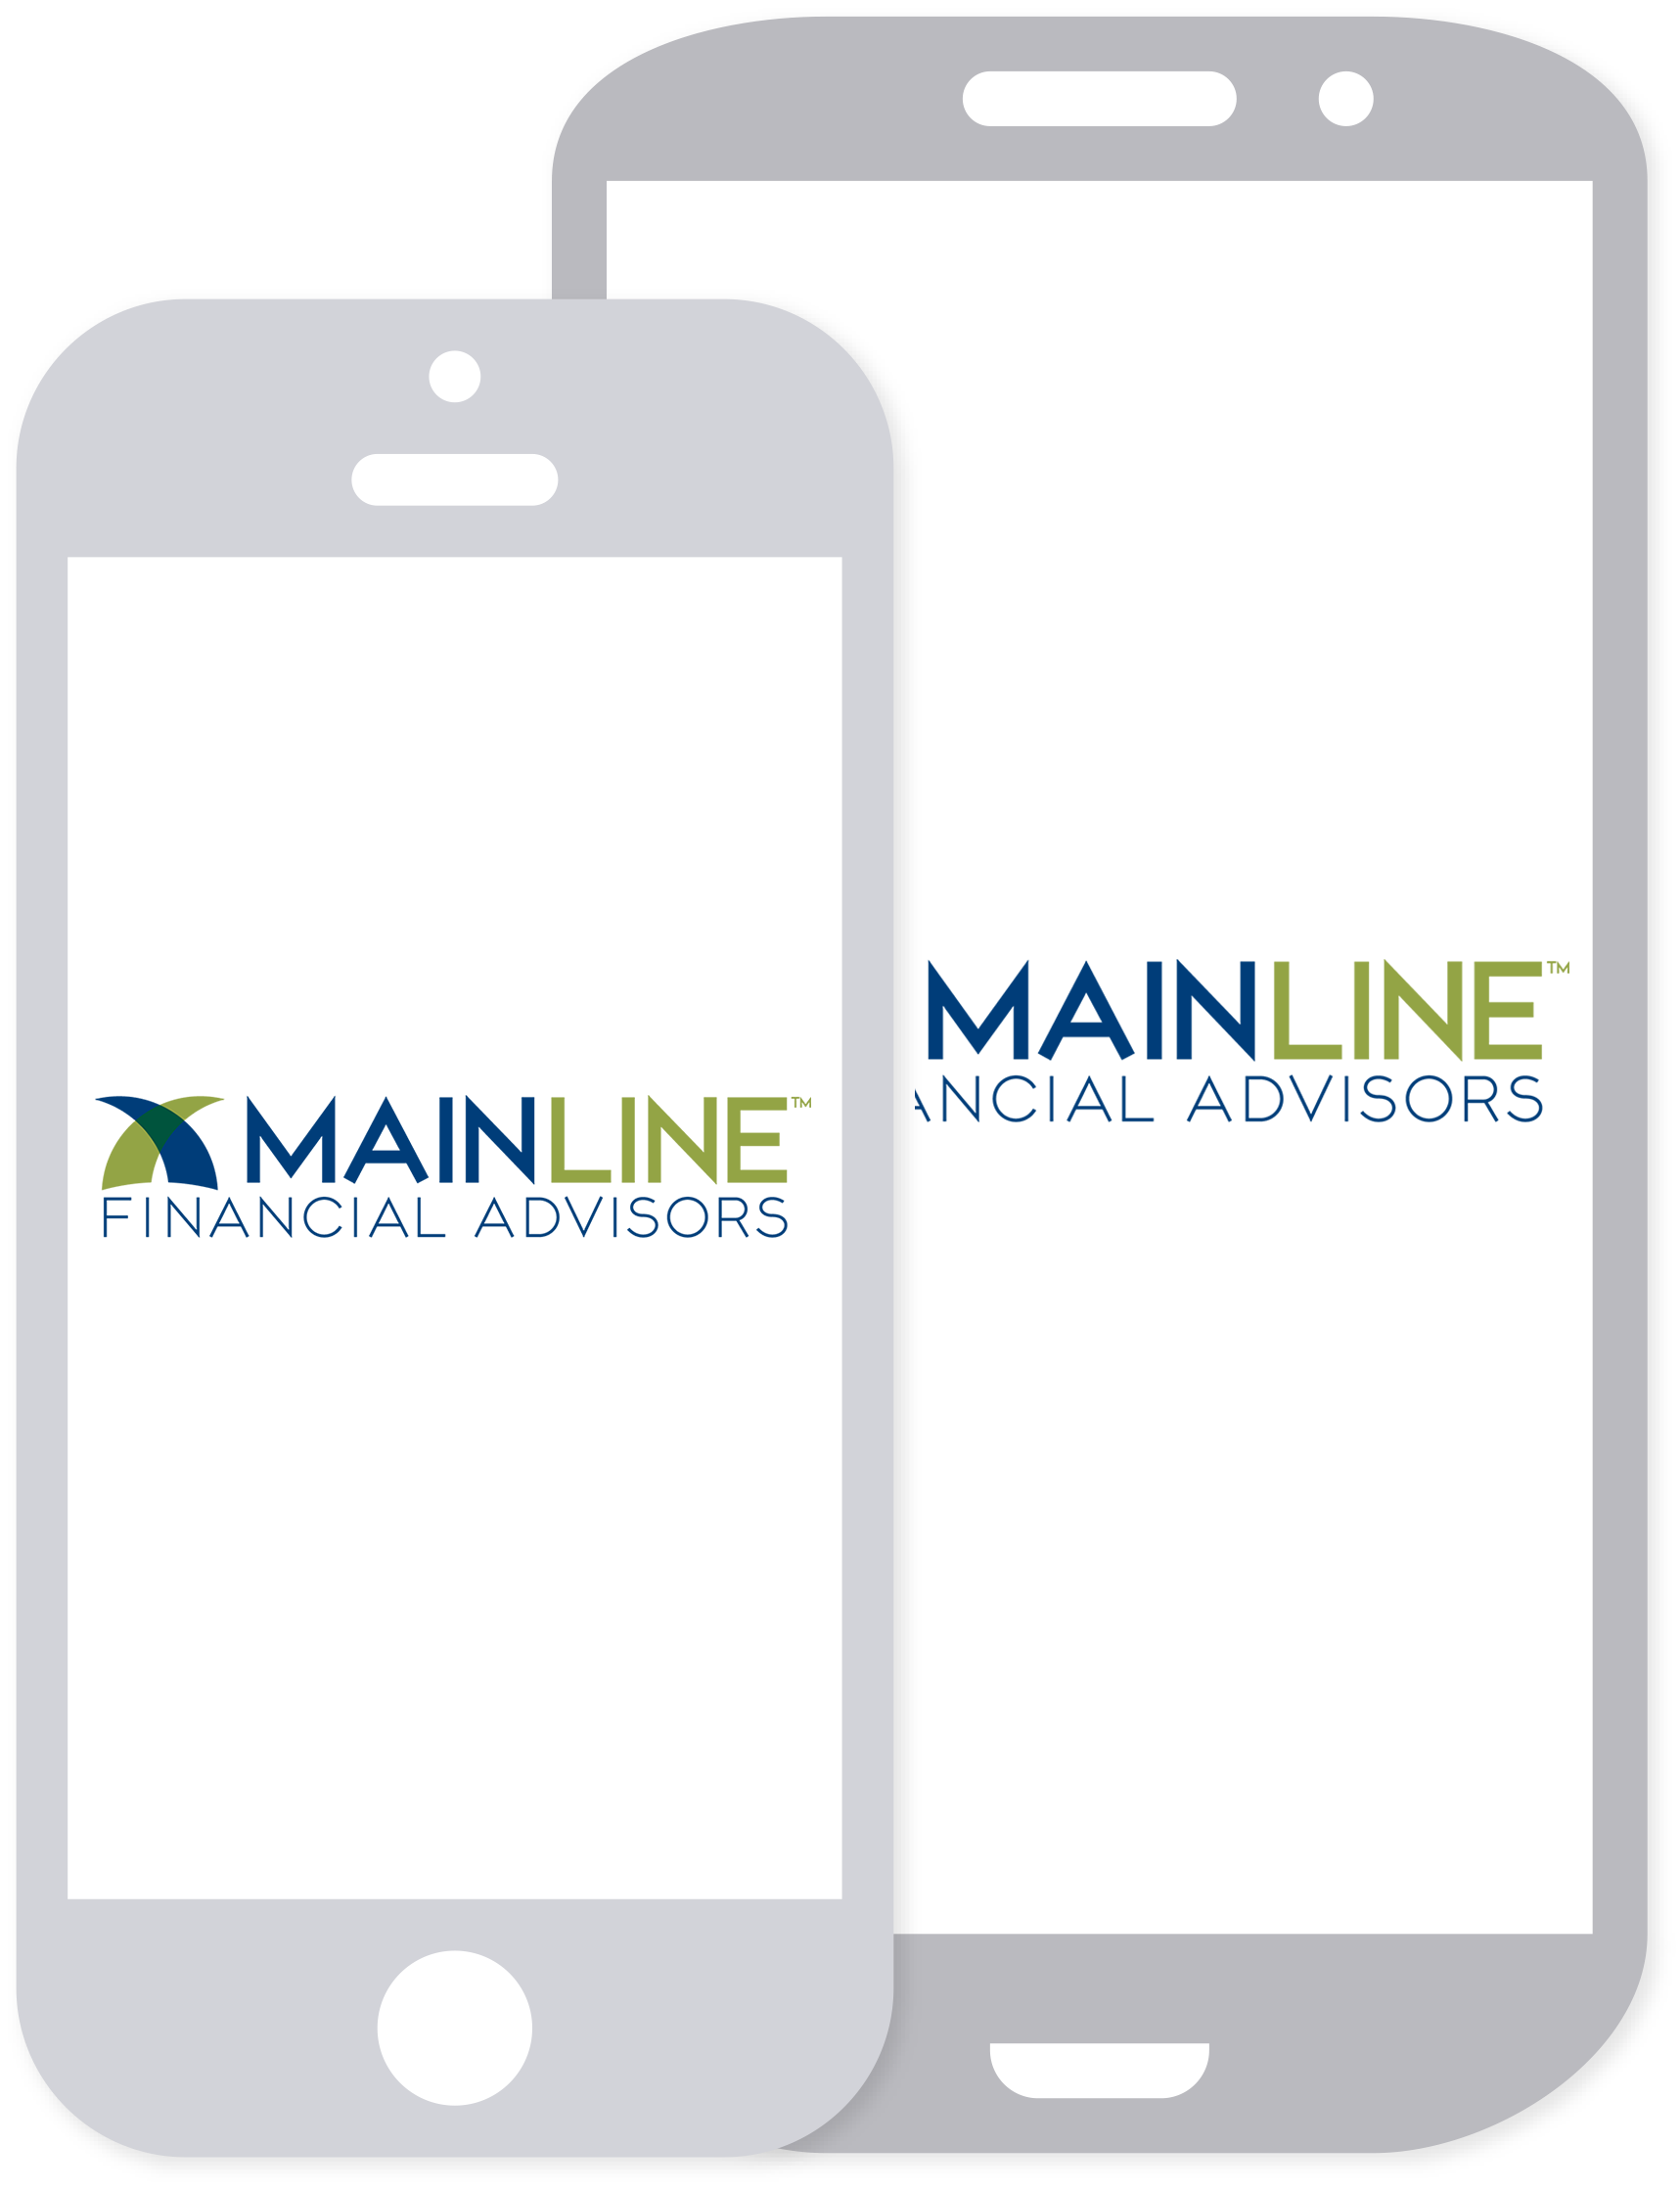 Holistic wealth management wealth financial advisory services llc - Download Our App